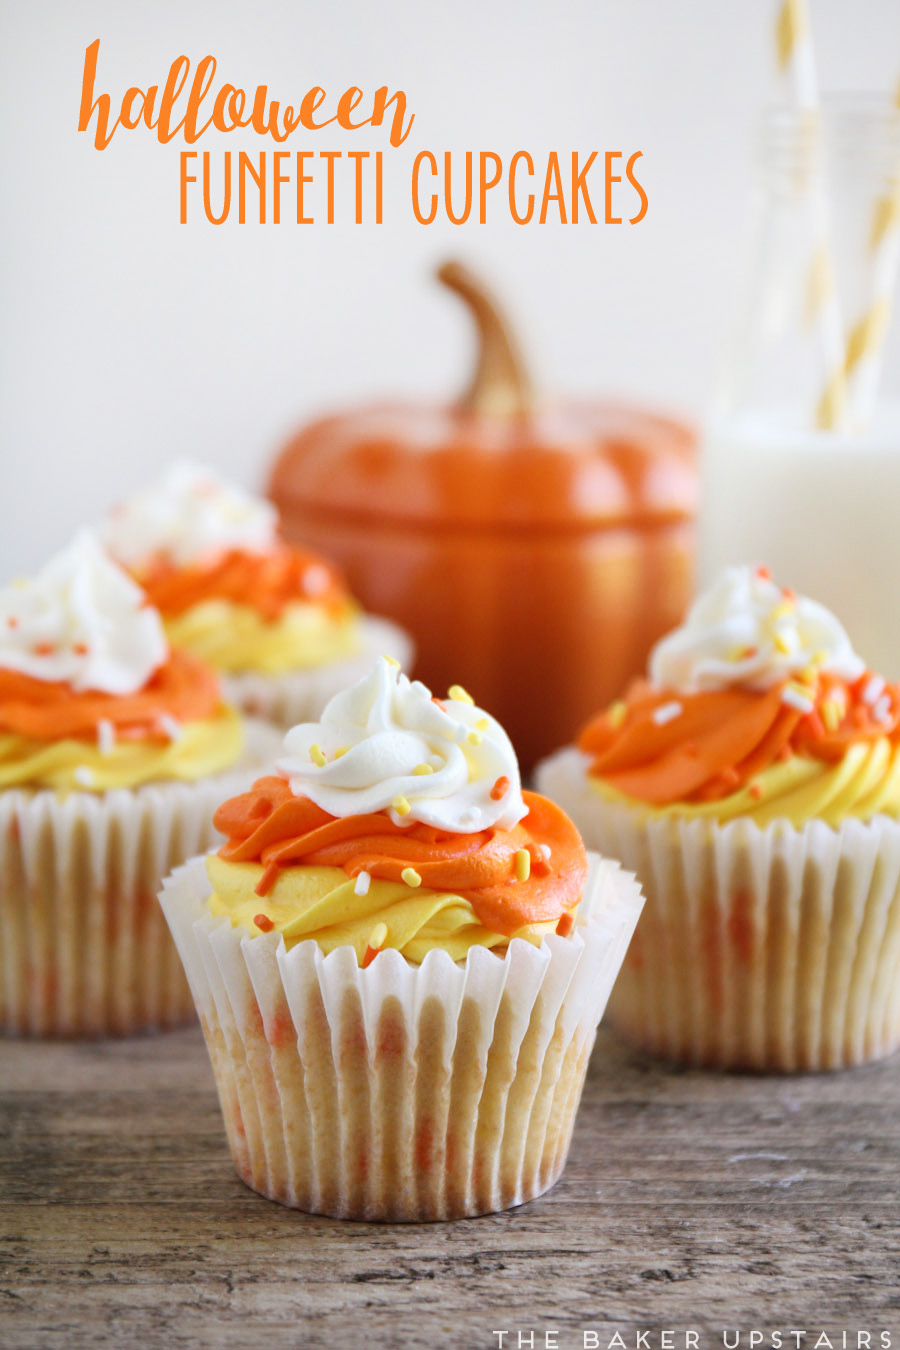 the baker upstairs: halloween funfetti cupcakes